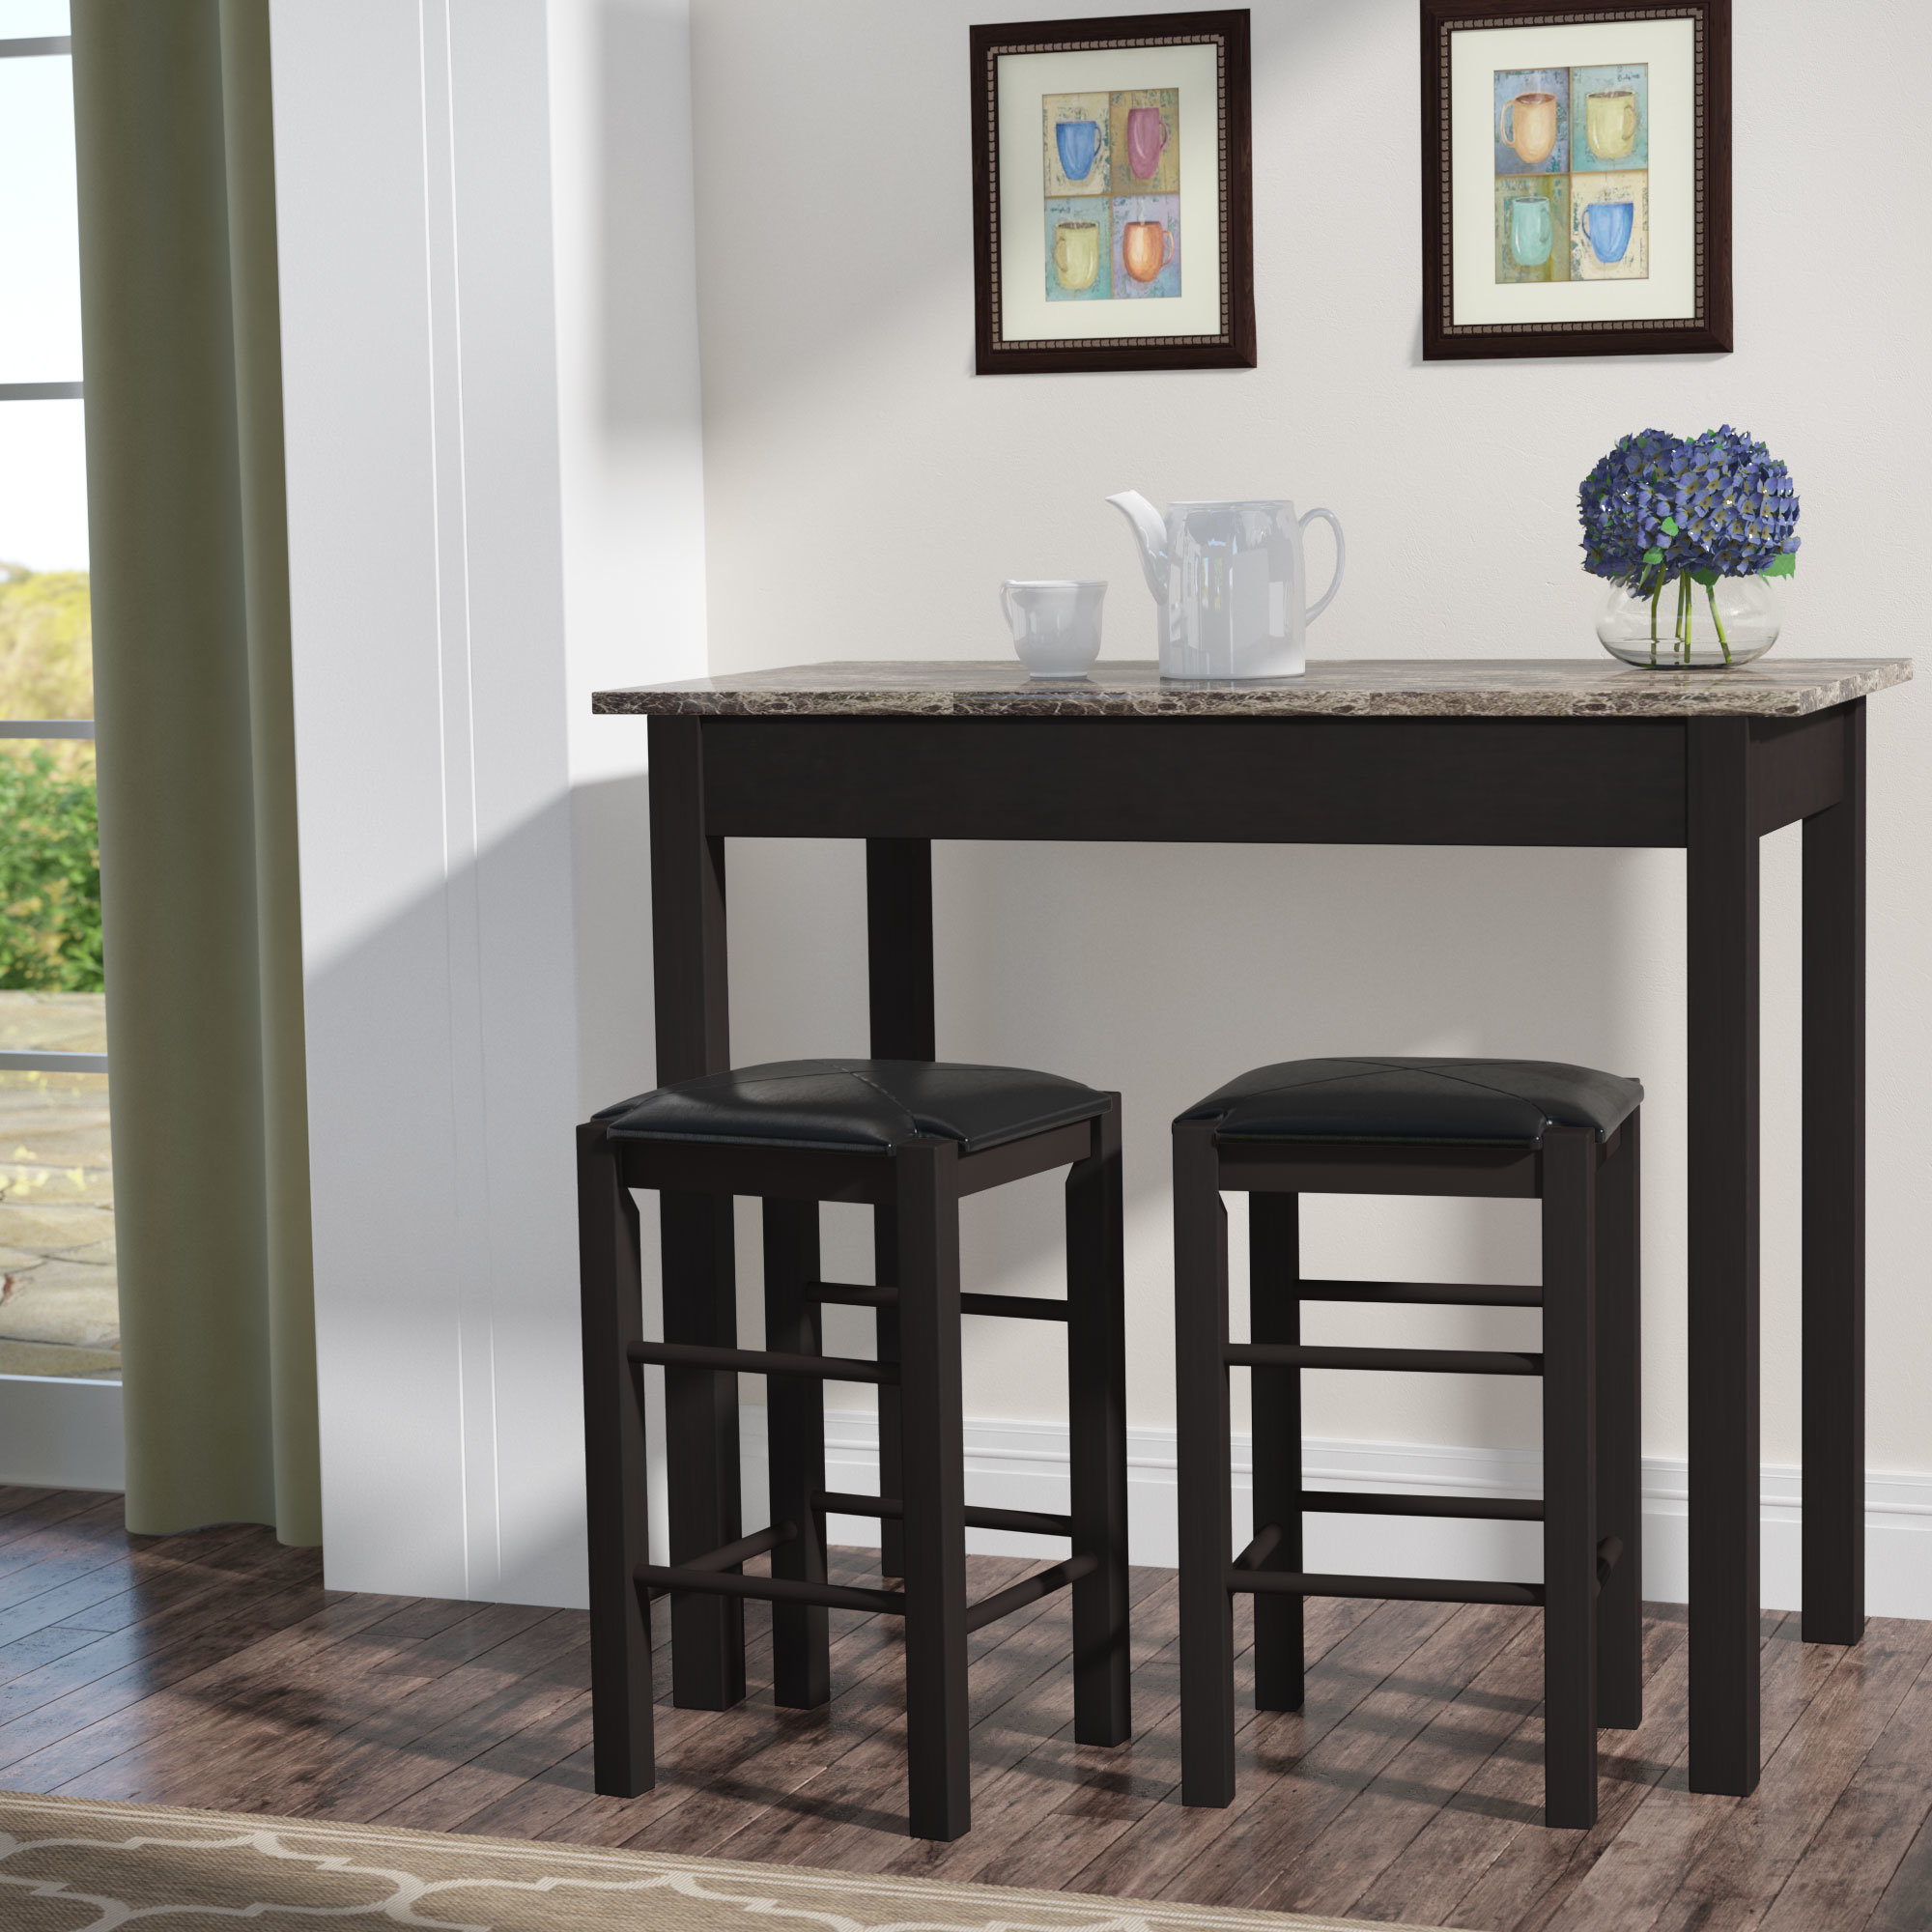 Preferred Penelope 3 Piece Counter Height Wood Dining Sets With Regard To Sheetz 3 Piece Counter Height Dining Set (View 17 of 20)